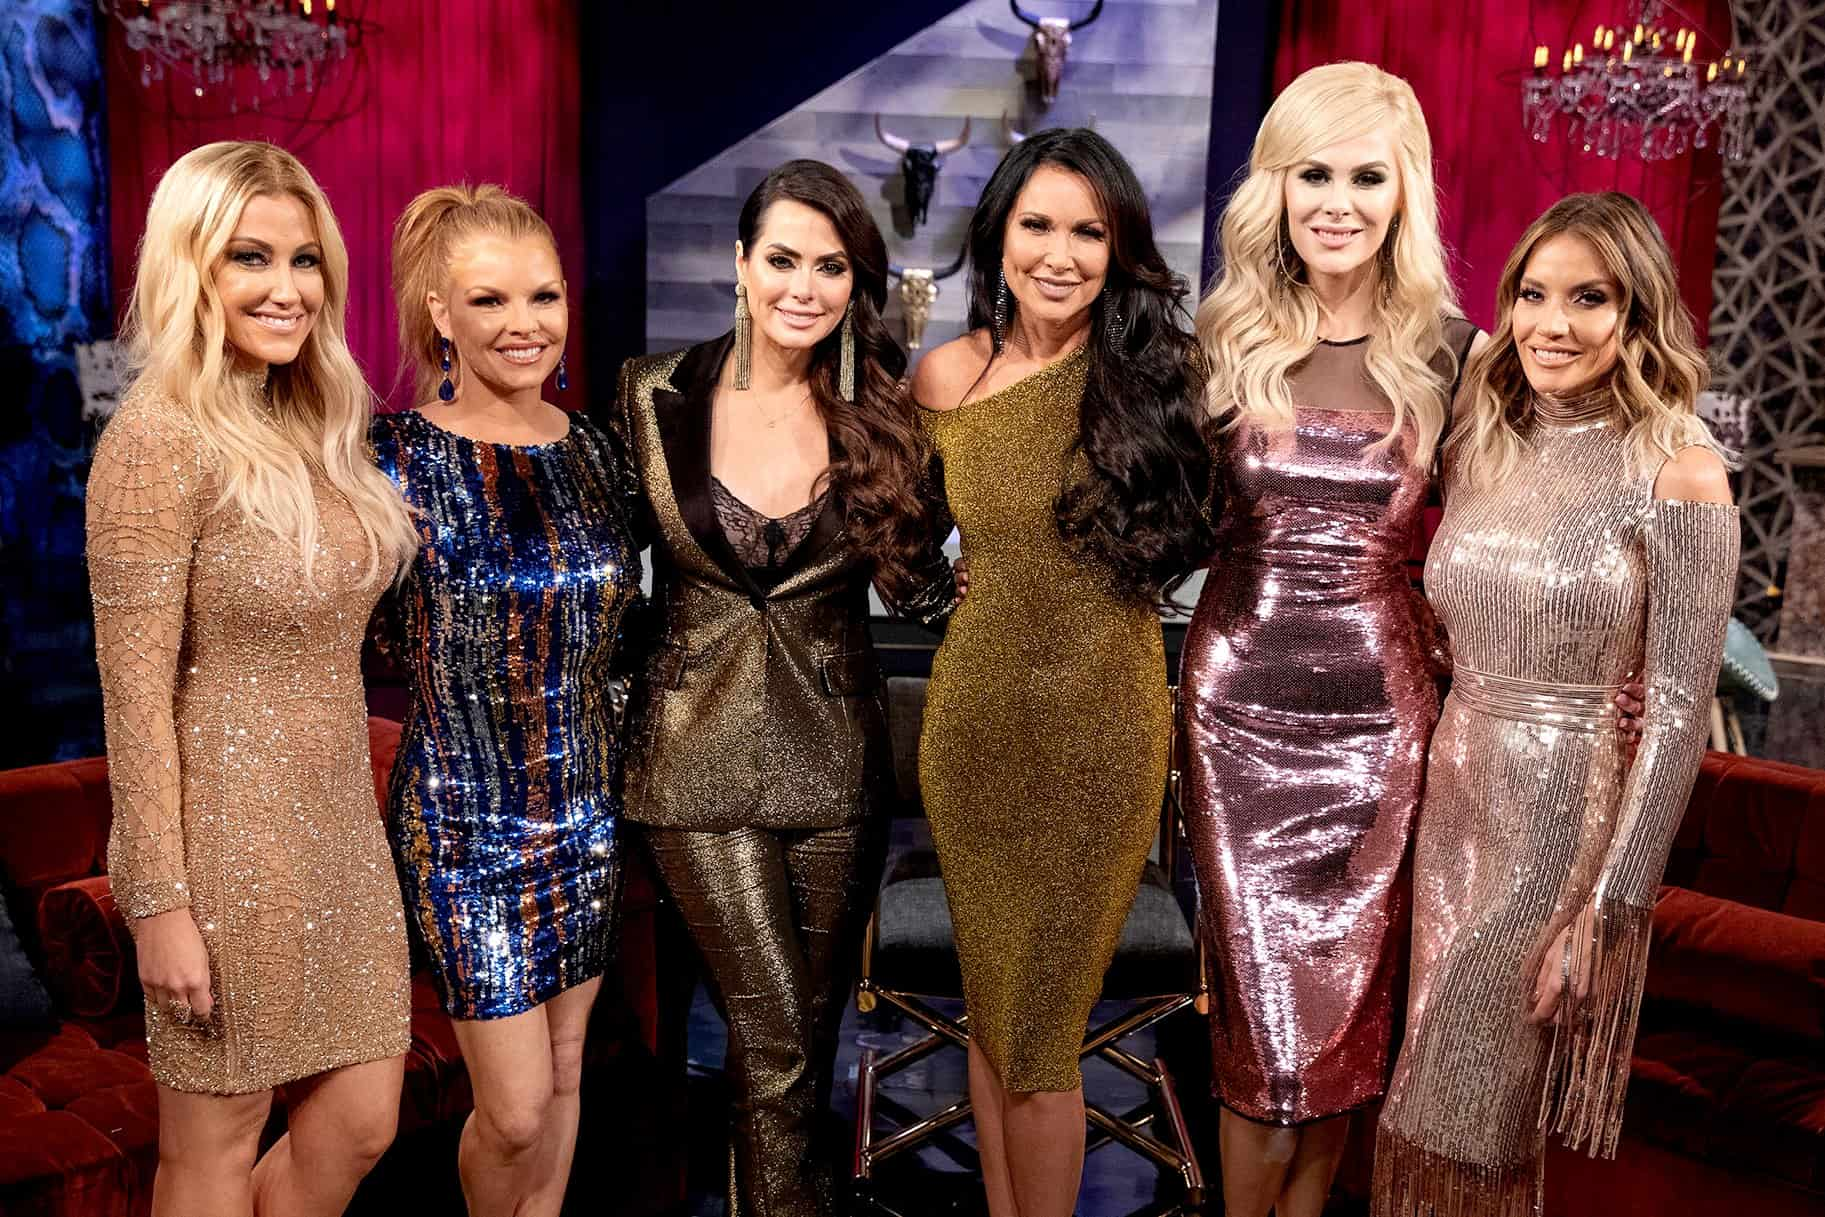 The Real Housewives of Dallas Season 3 Reunion 2018 Cast Photo